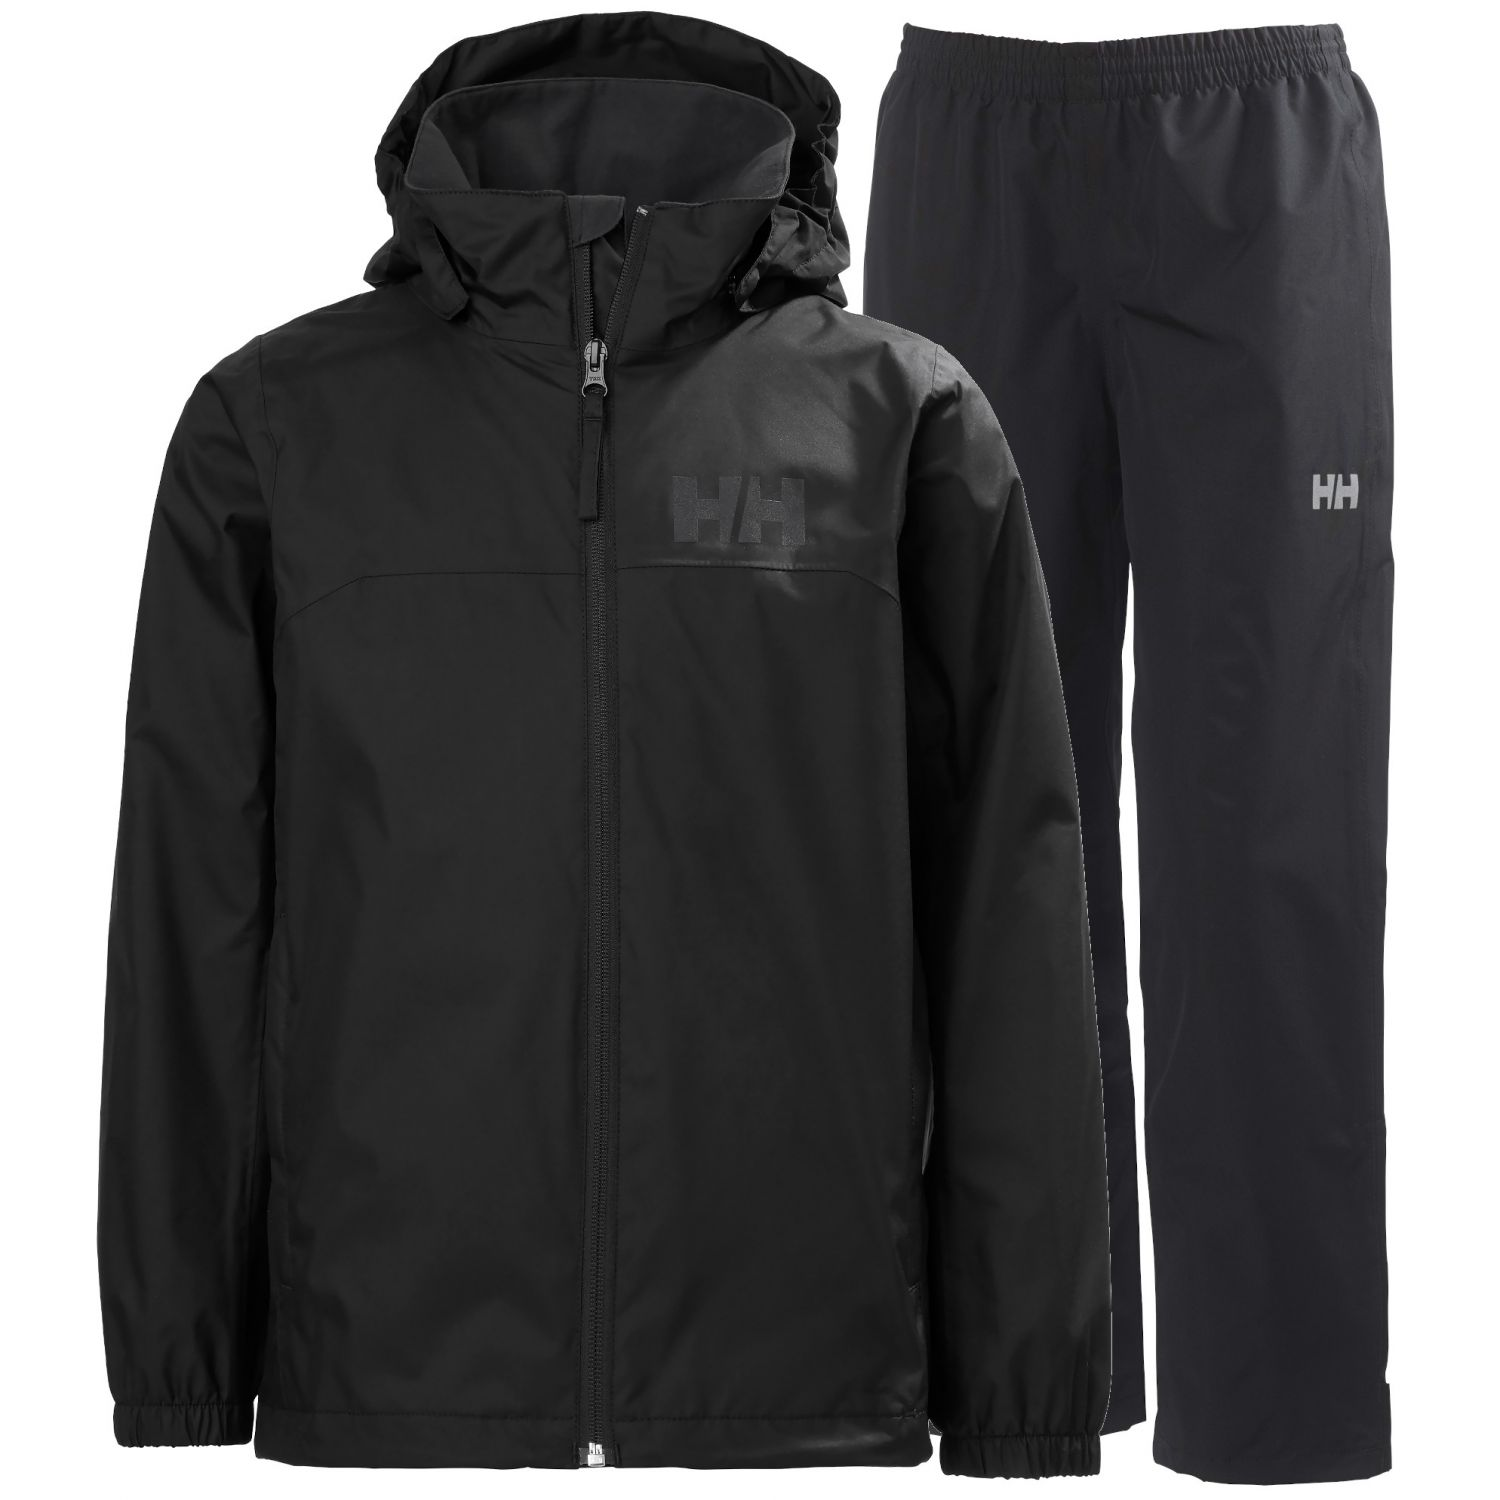 Helly Hansen Urban/Dubliner regnsæt, junior, sort